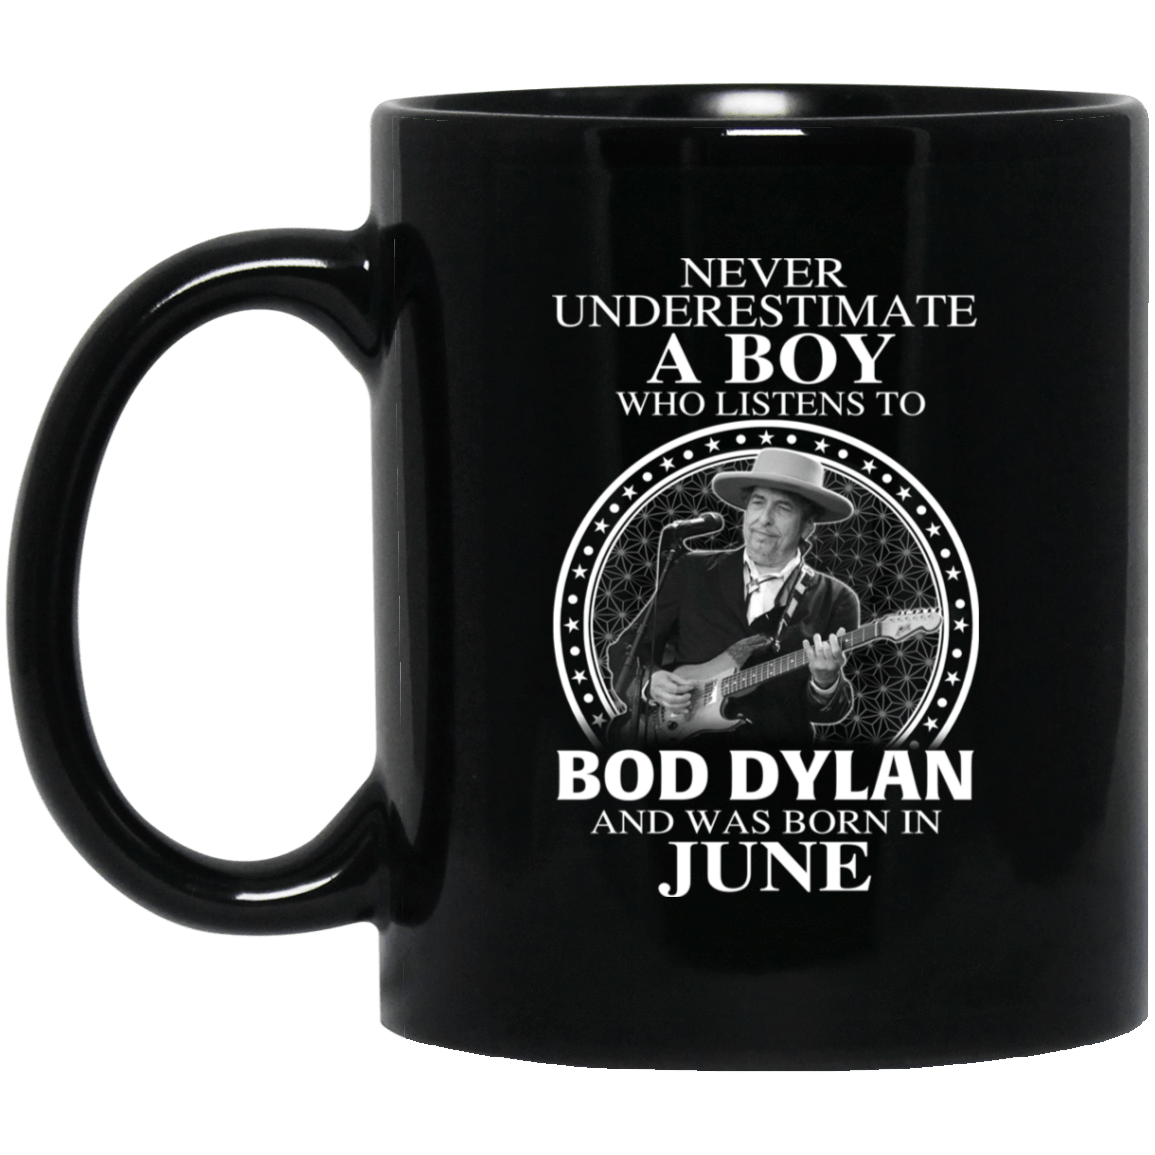 A Boy Who Listens To Bob Dylan And Was Born In June Mug 1065-10181-76153790-49307 - Tee Ript